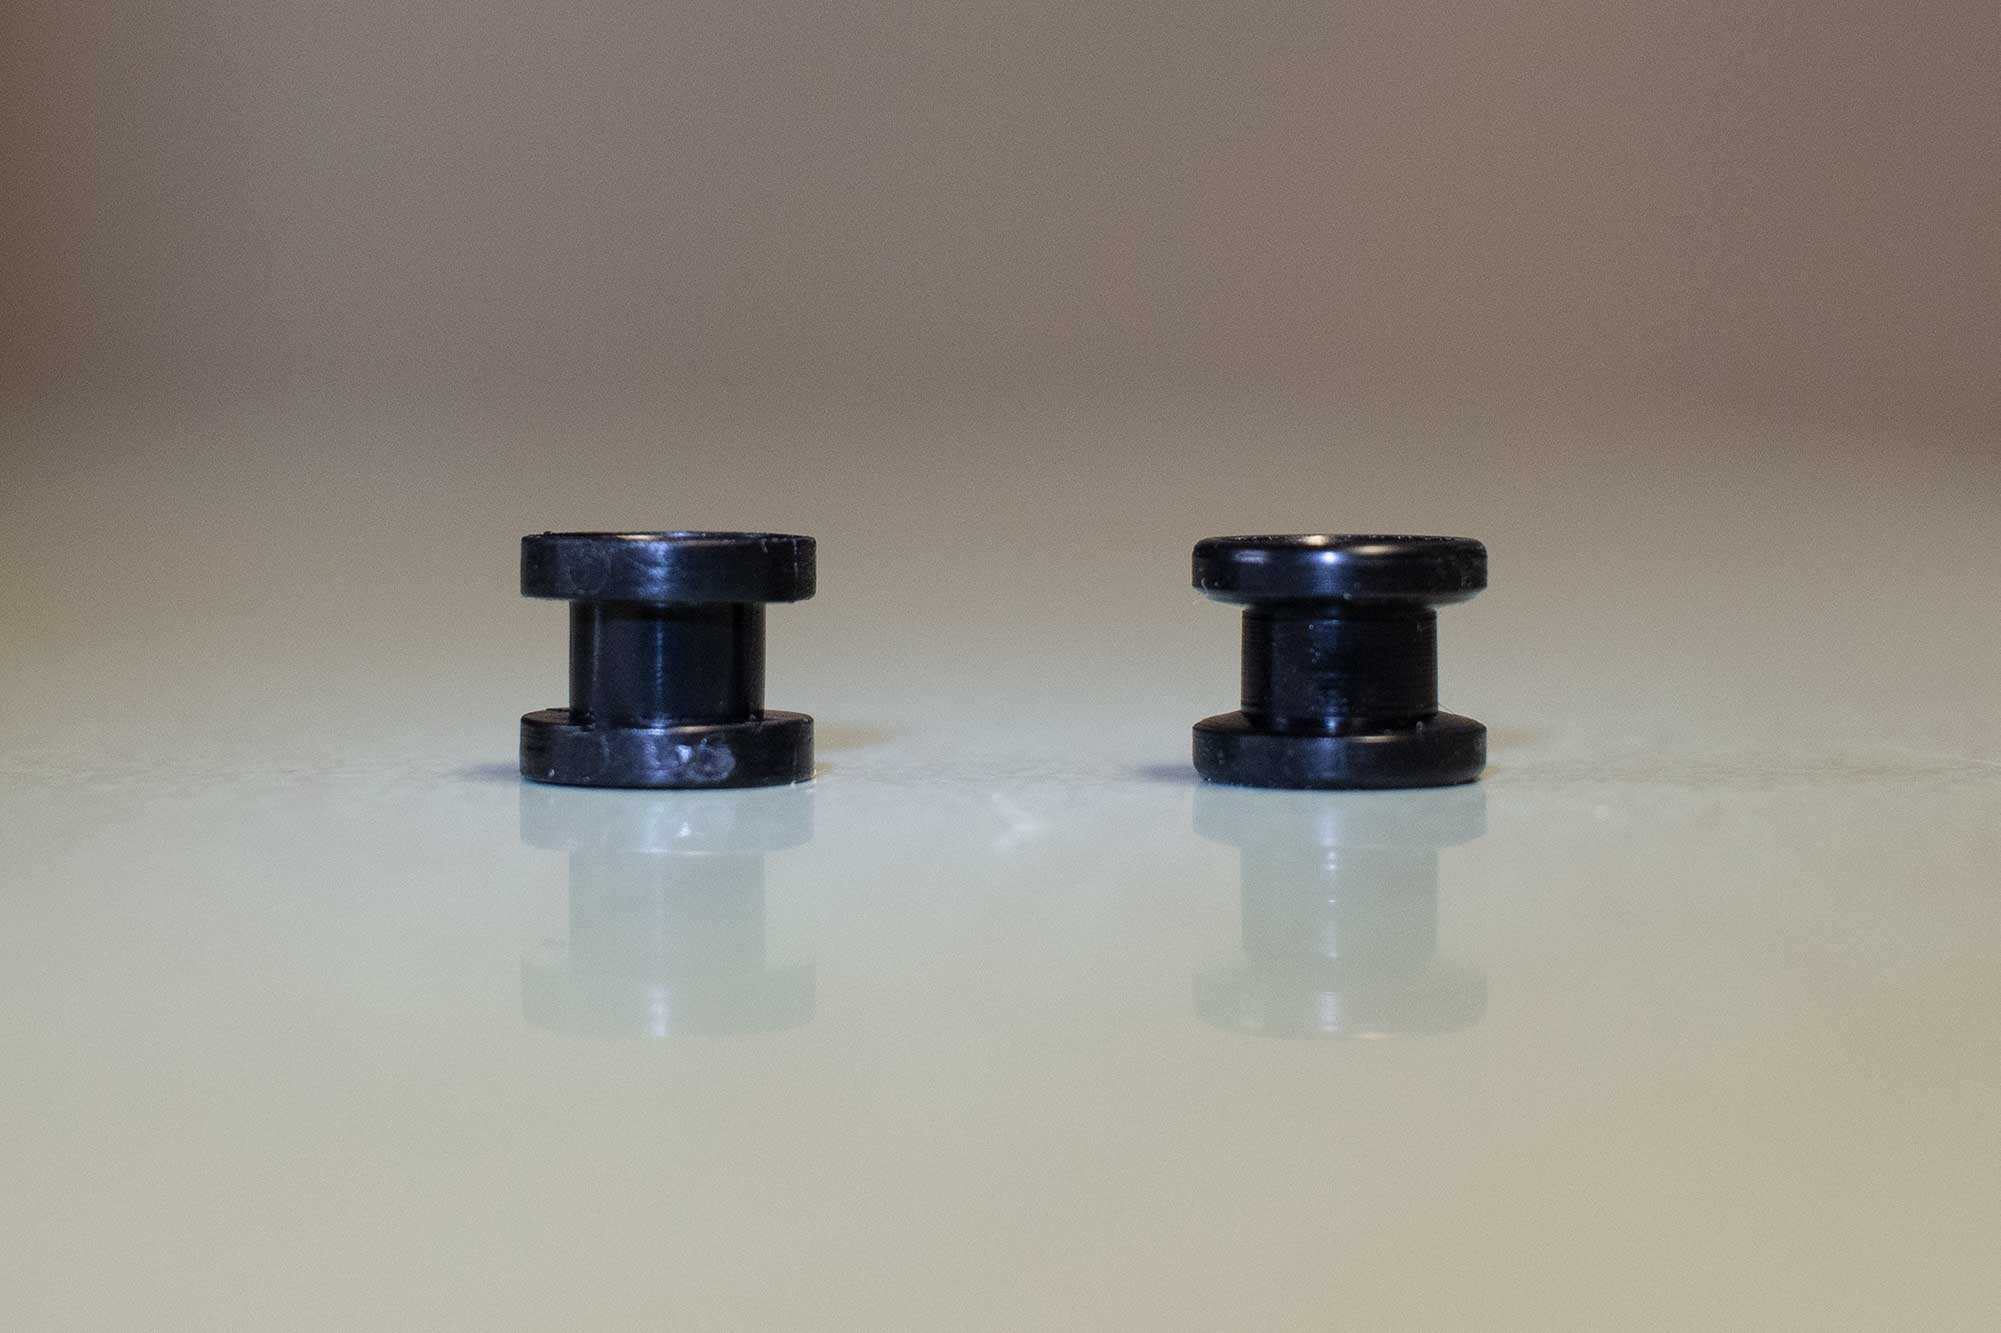 Molded rail guide on the left, machiened rail guide on the right